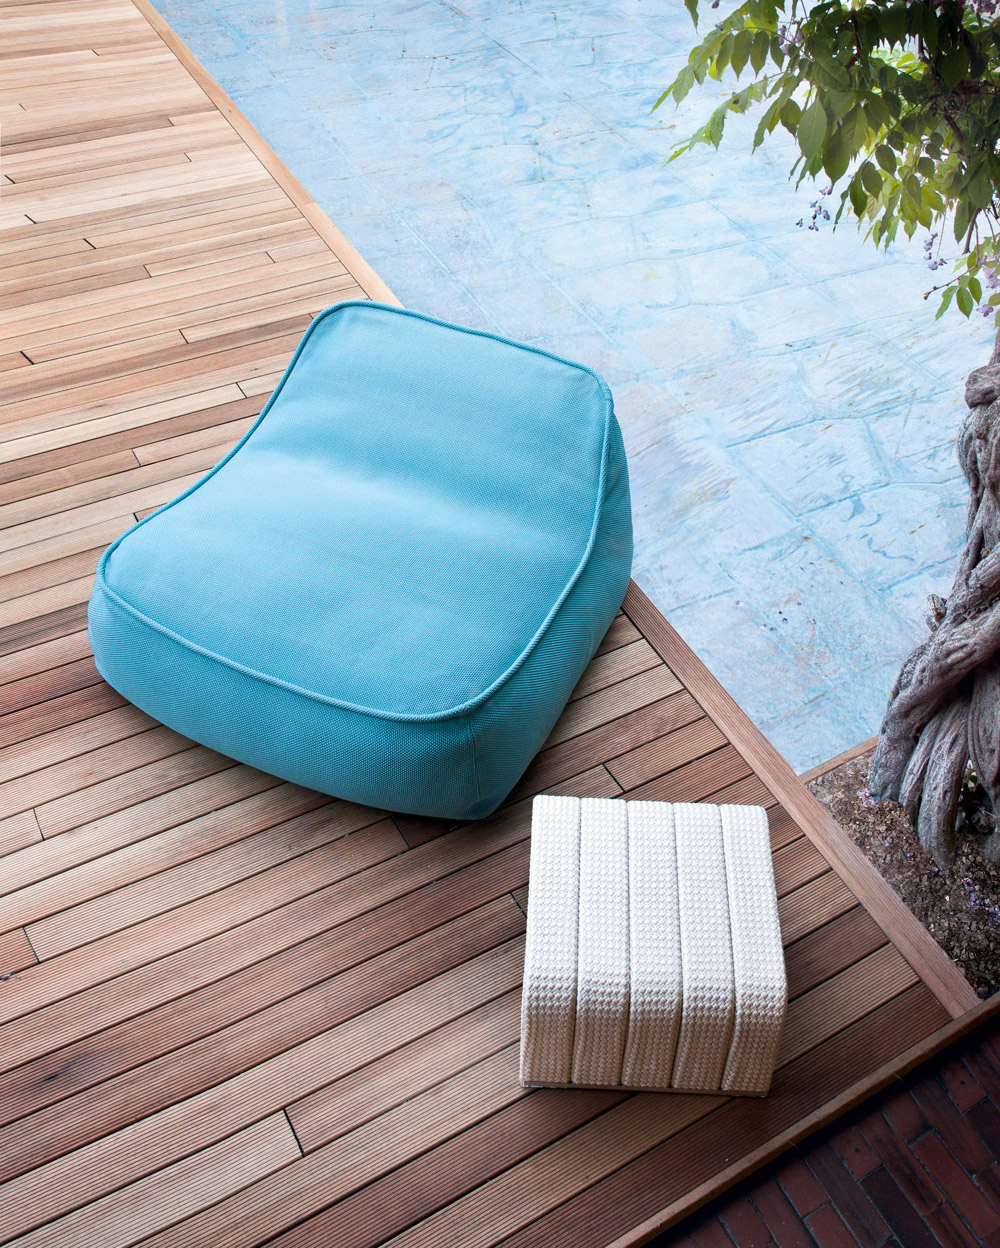 This unconventional ottoman is padded in polystyrene spheres. Its ergonomic design moulds seamlessly to any body type